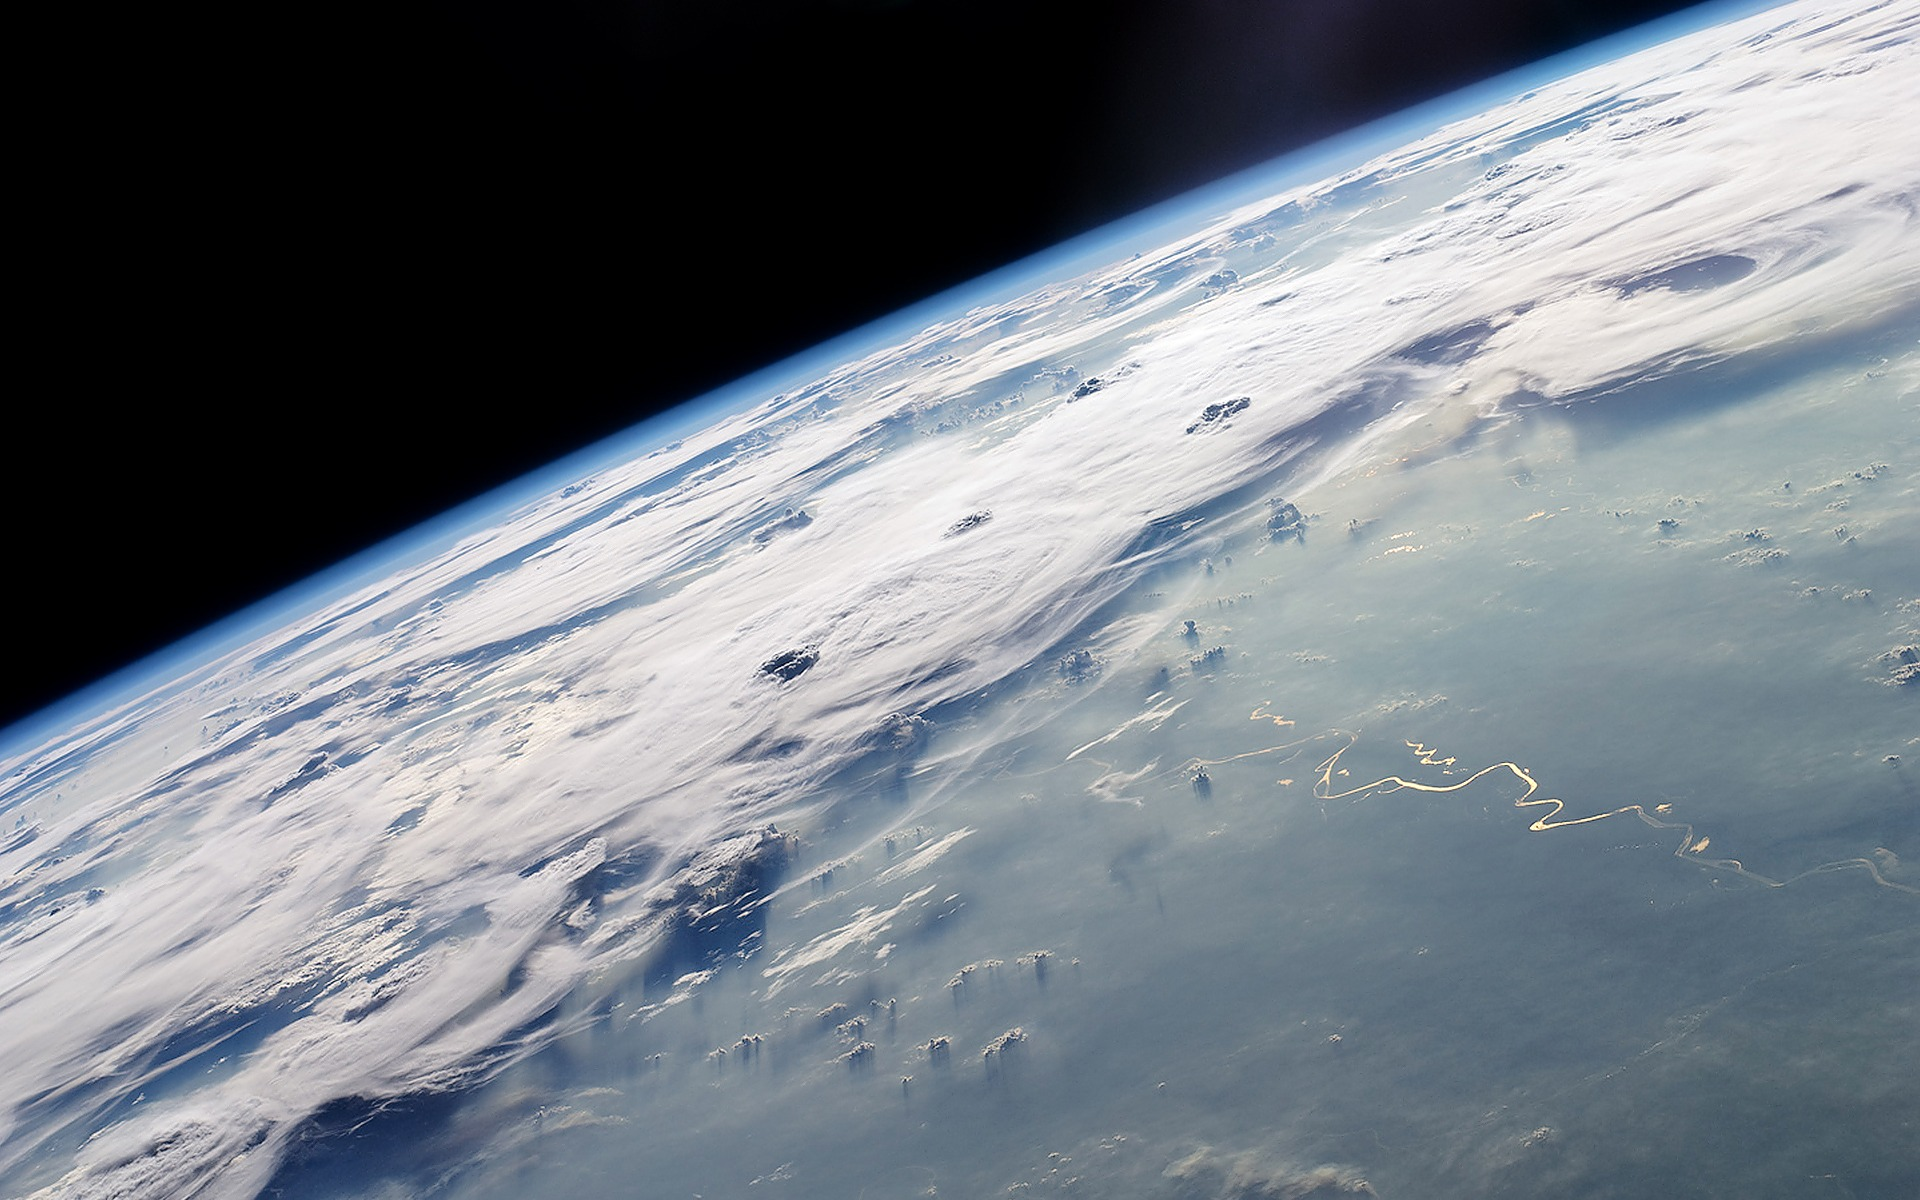 1920x1200 Earth from space desktop PC and Mac wallpaper